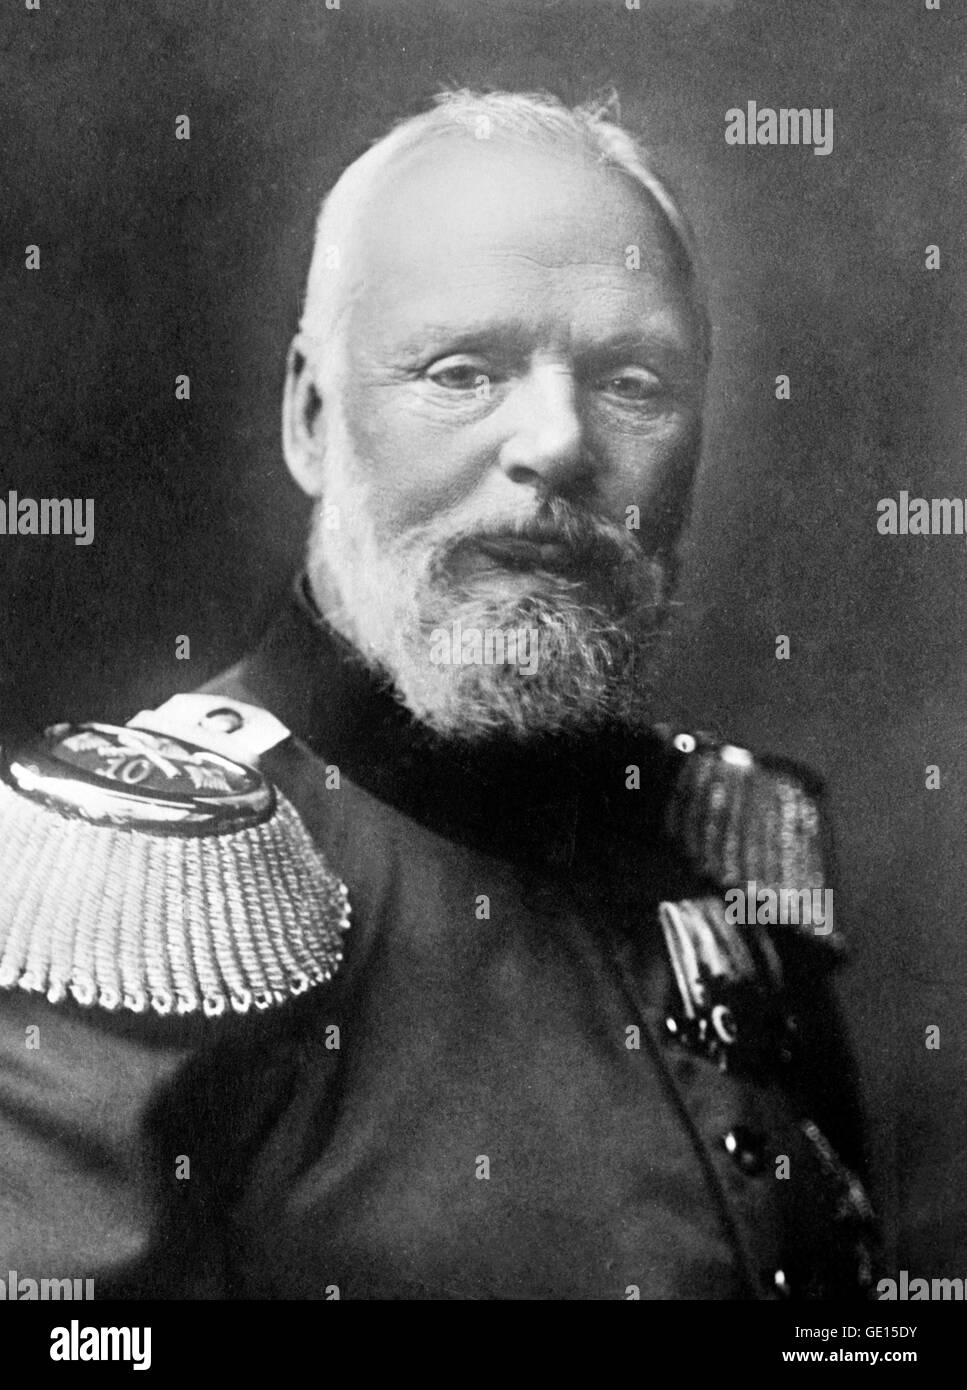 Ludwig III of Bavaria. Portrait of Prince Ludwig III (1845-1921) who was the last King of Bavaria, reigning from - Stock Image